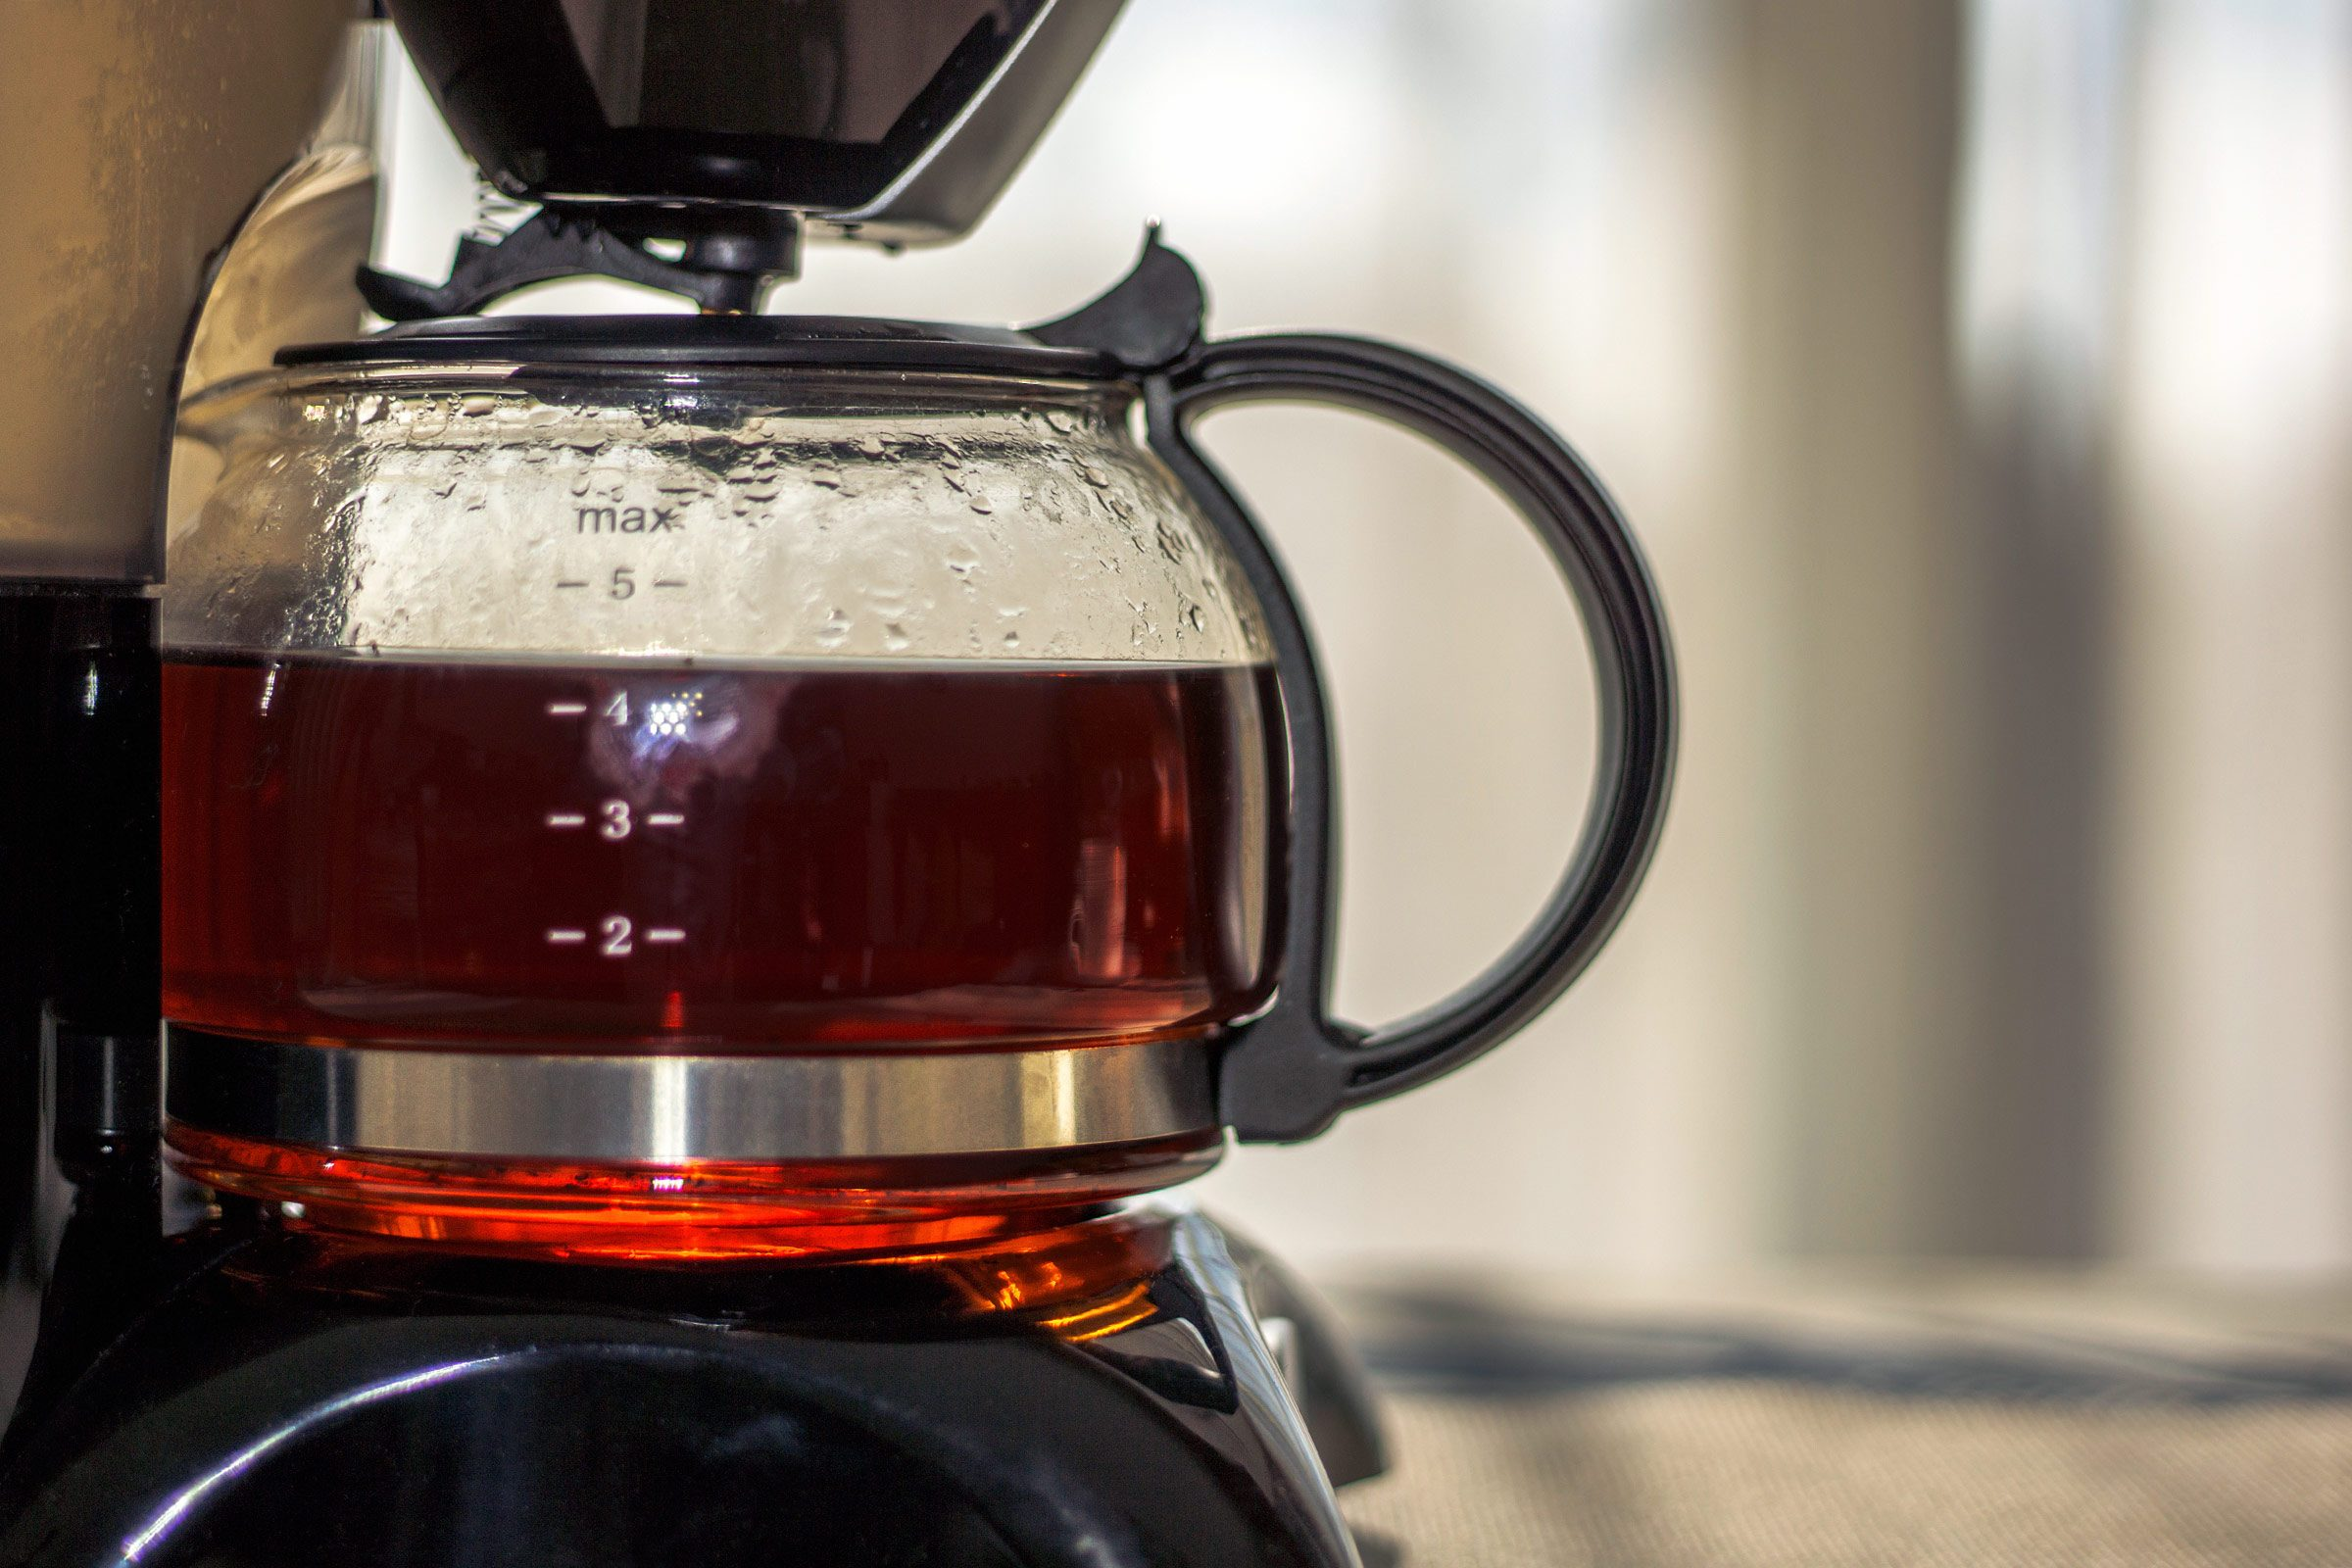 Coffee Maker: Clean Out With Vinegar